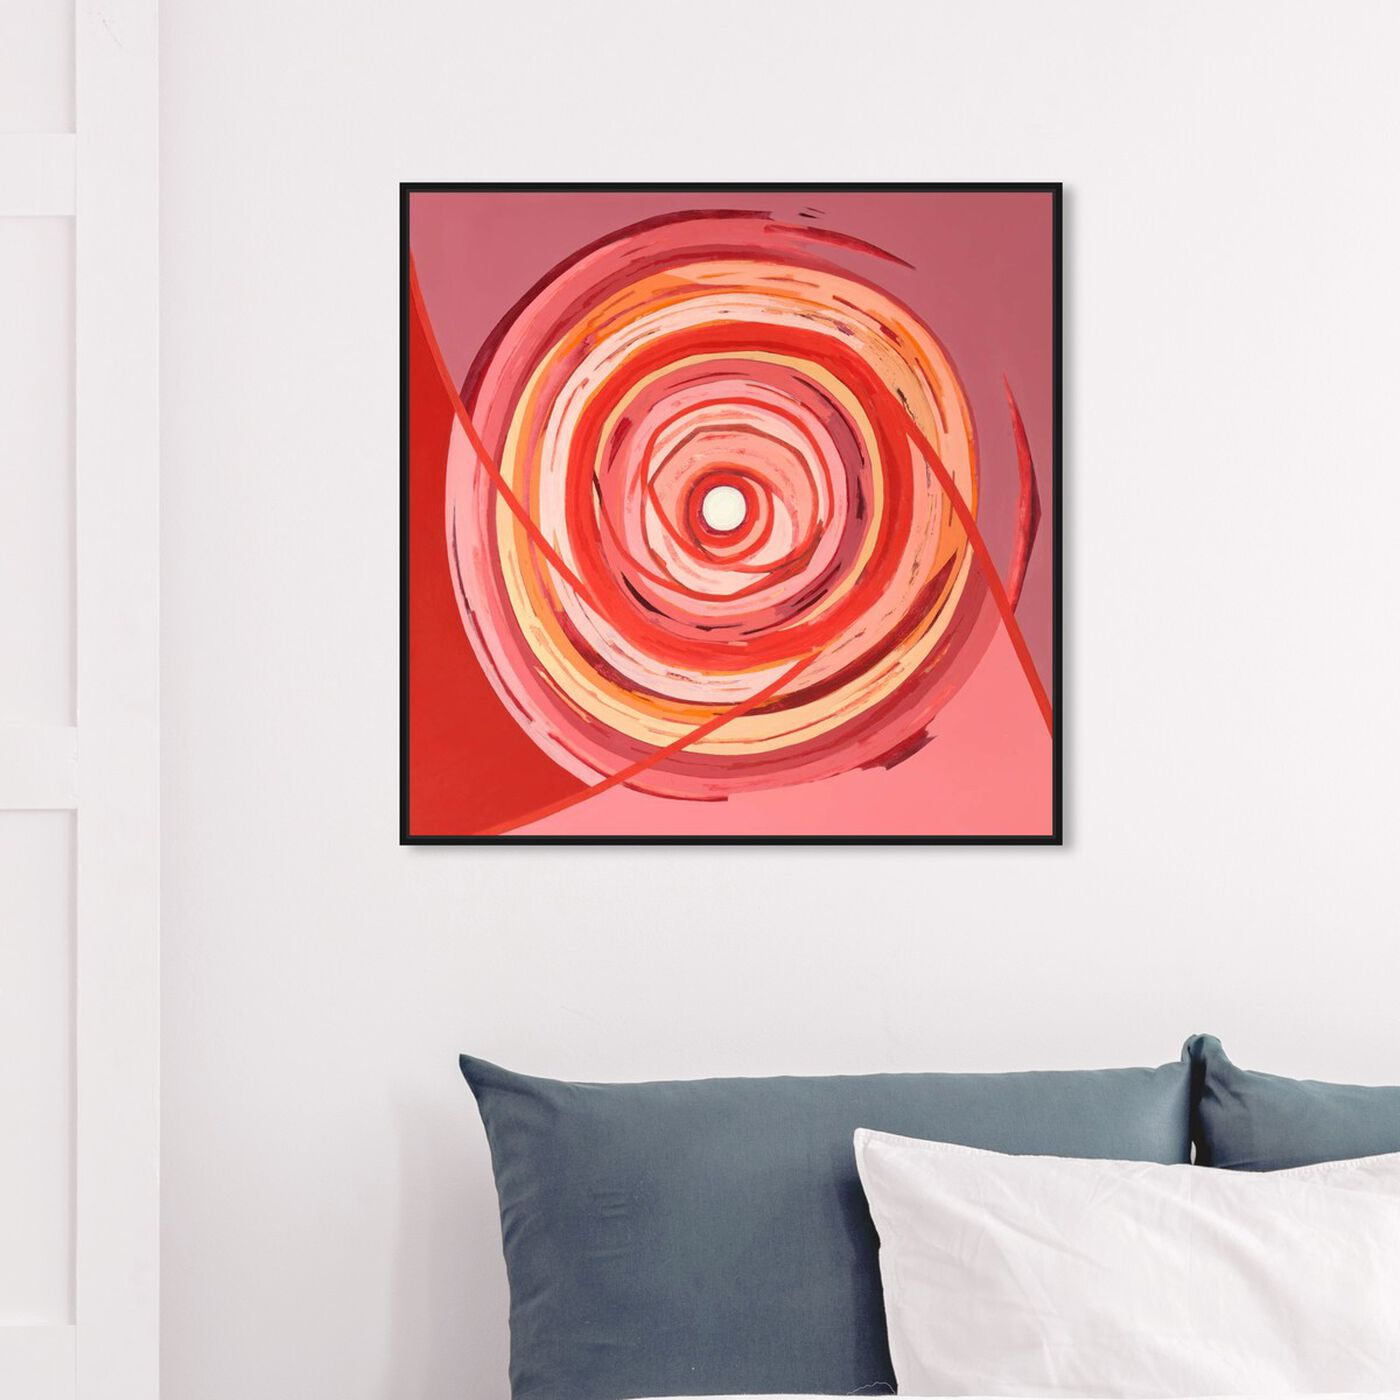 Hanging view of Sai - Pictis Spiralis Rouge 1NM1759 featuring abstract and geometric art.